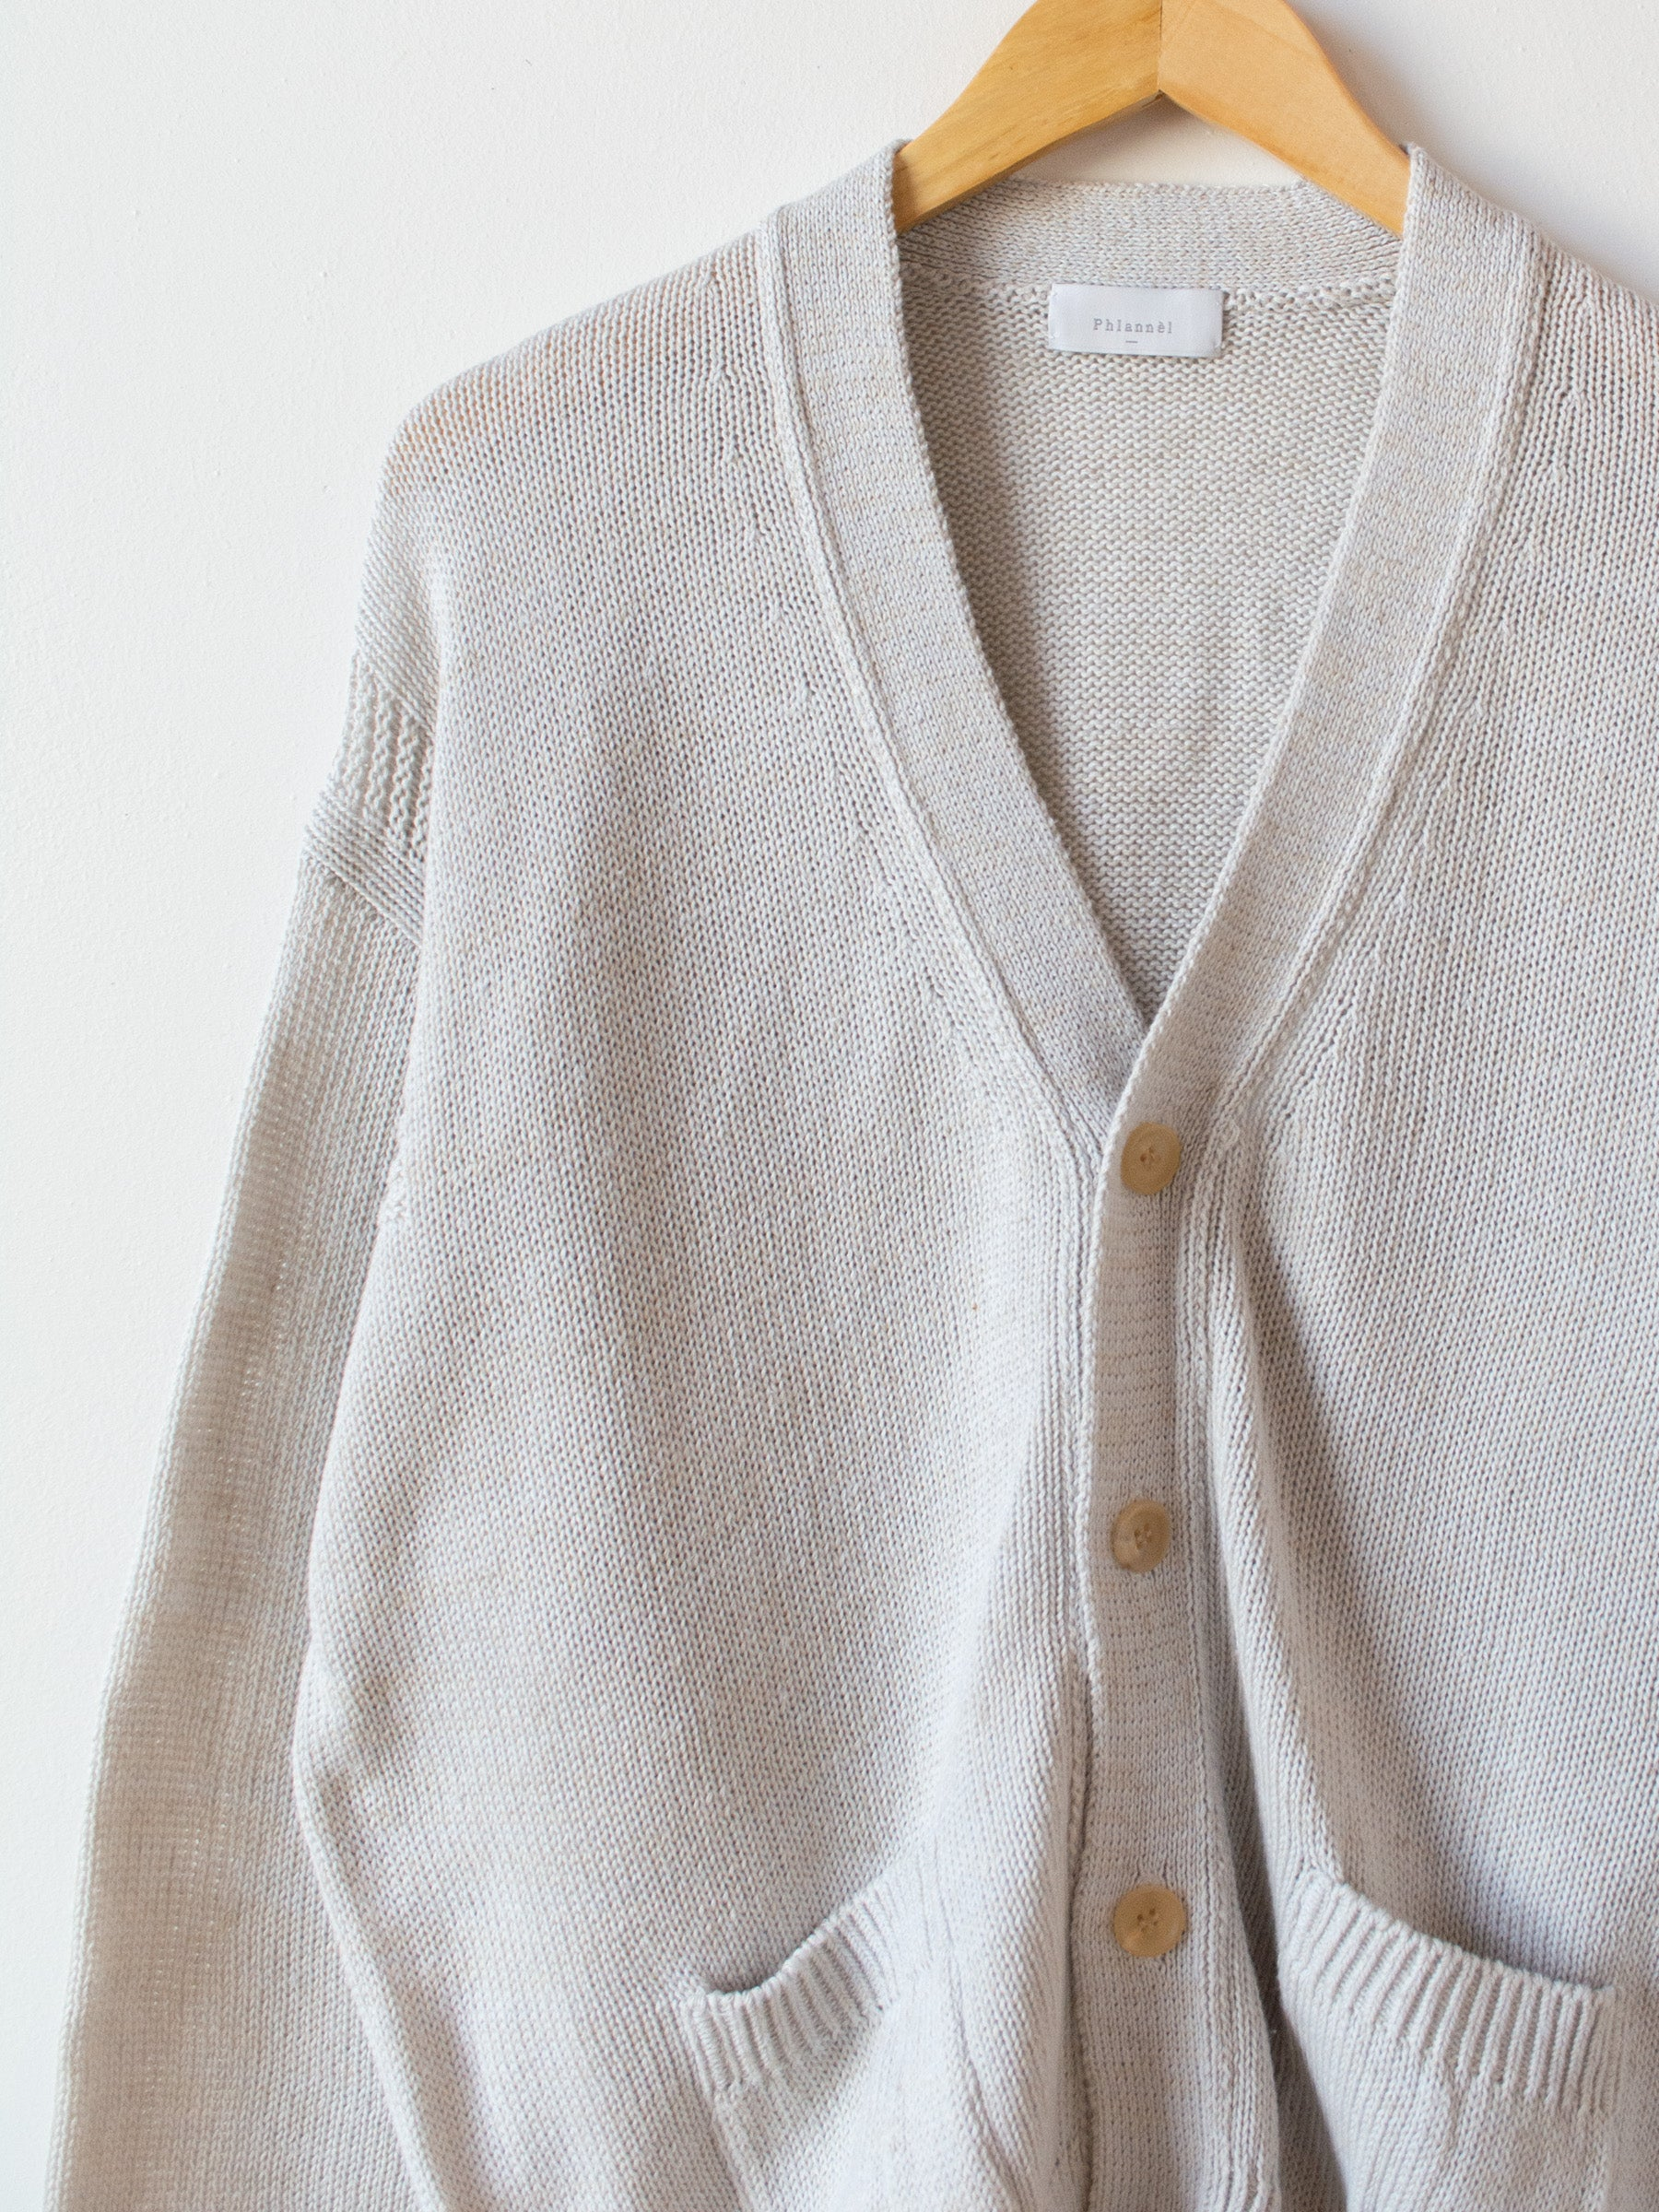 Cotton Linen Guernsey Cardigan - Light Gray Mix